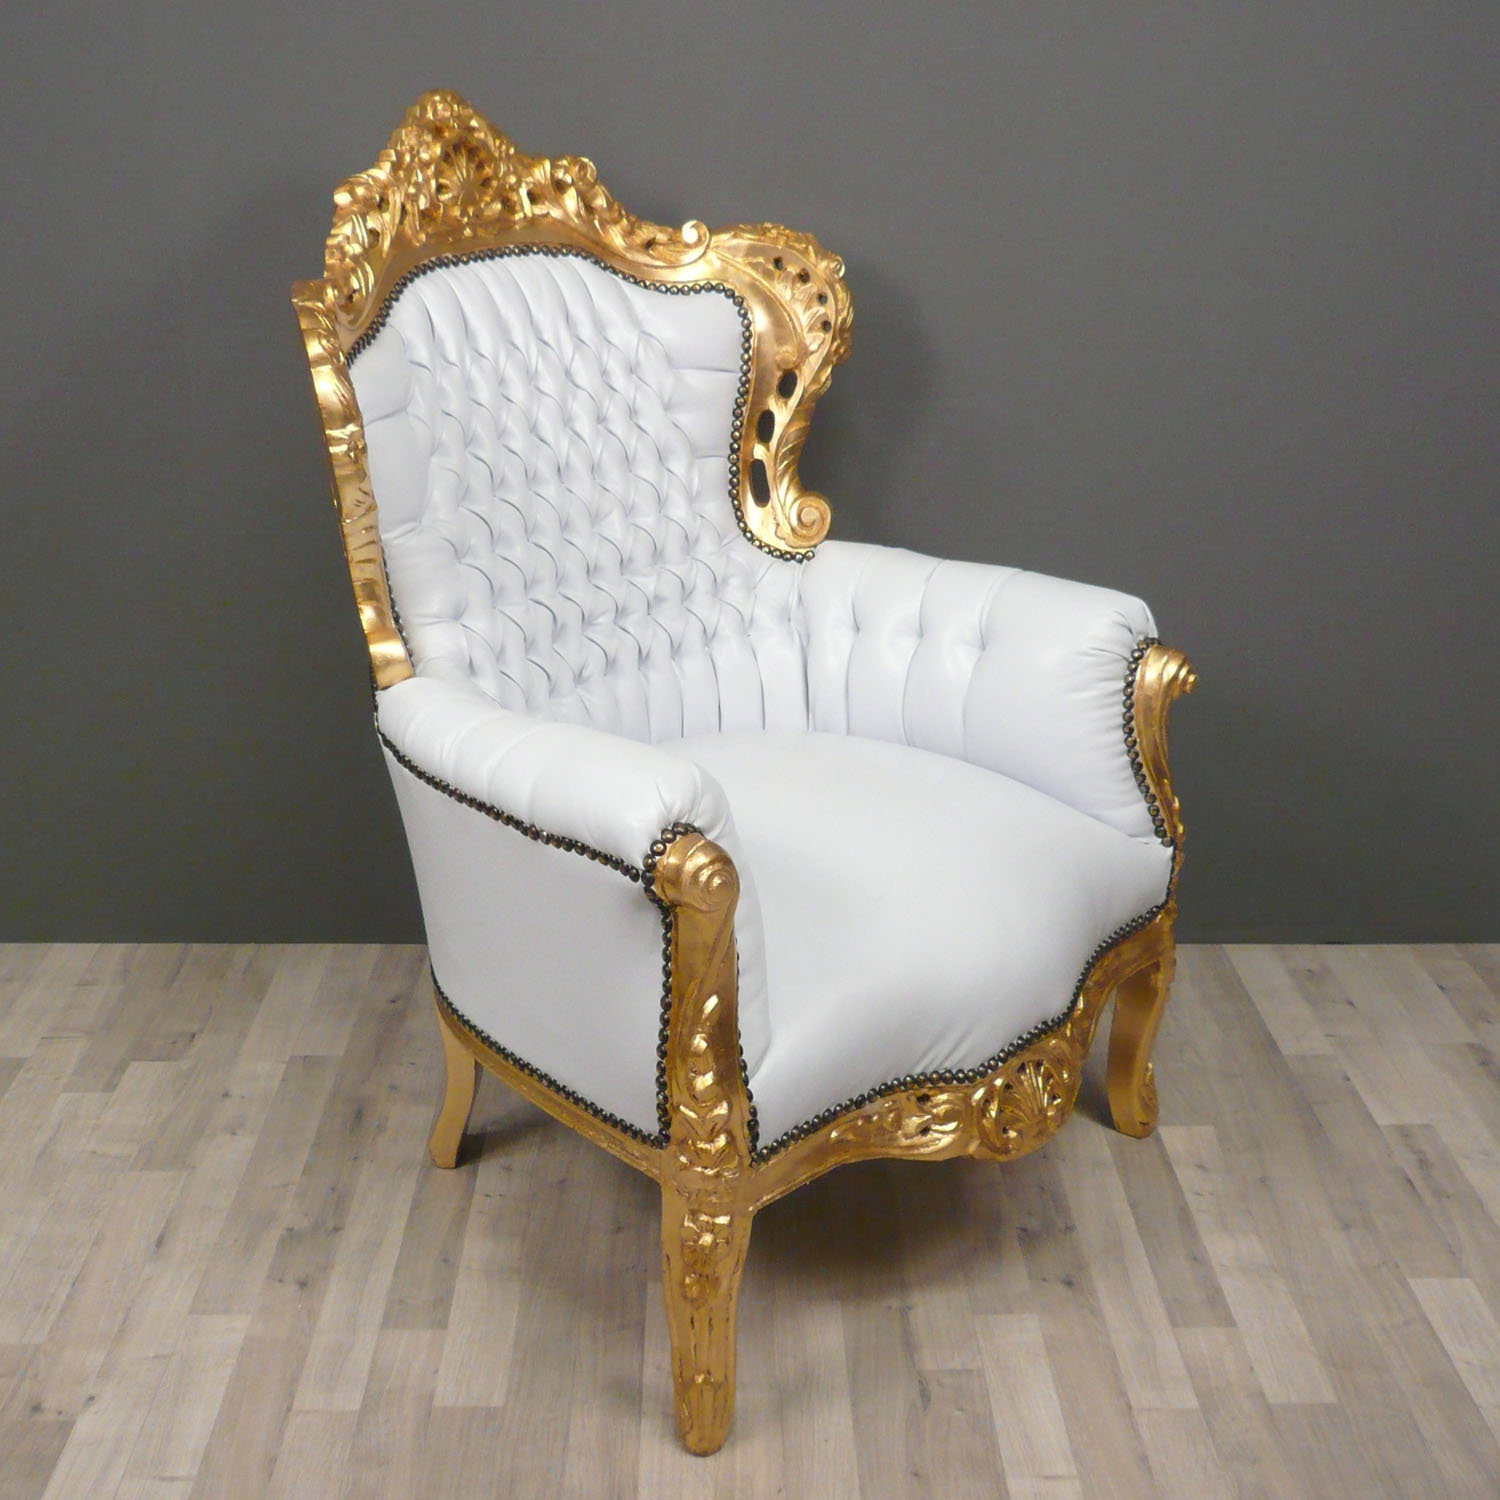 8 types of chairs and how to style them rl - Fauteuil blanc capitonne ...